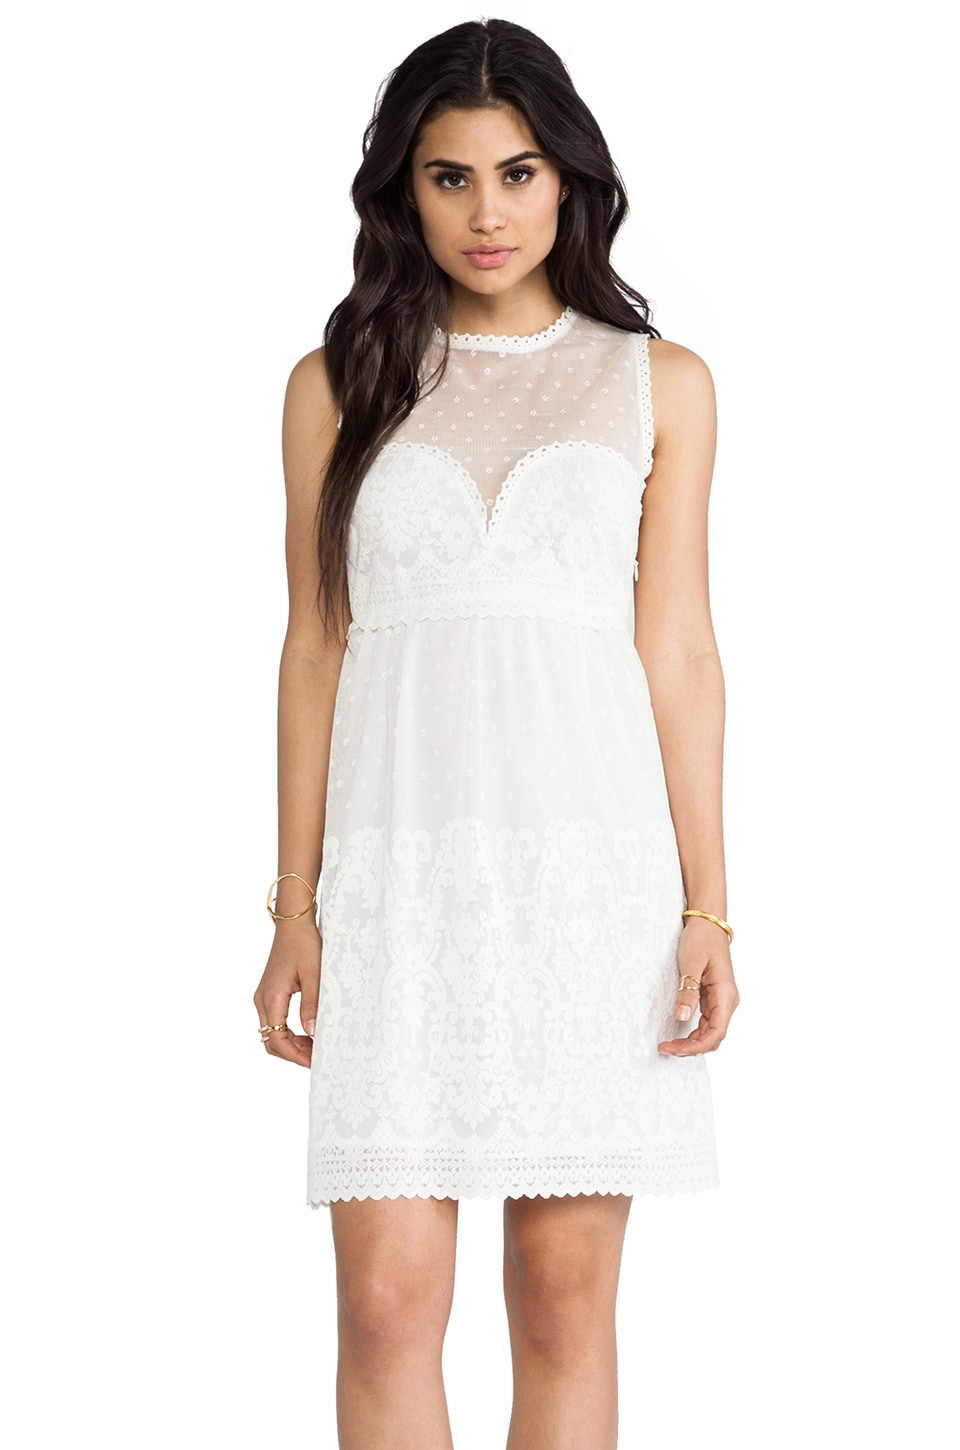 Dolce Vita Rosabella Dress in Snow